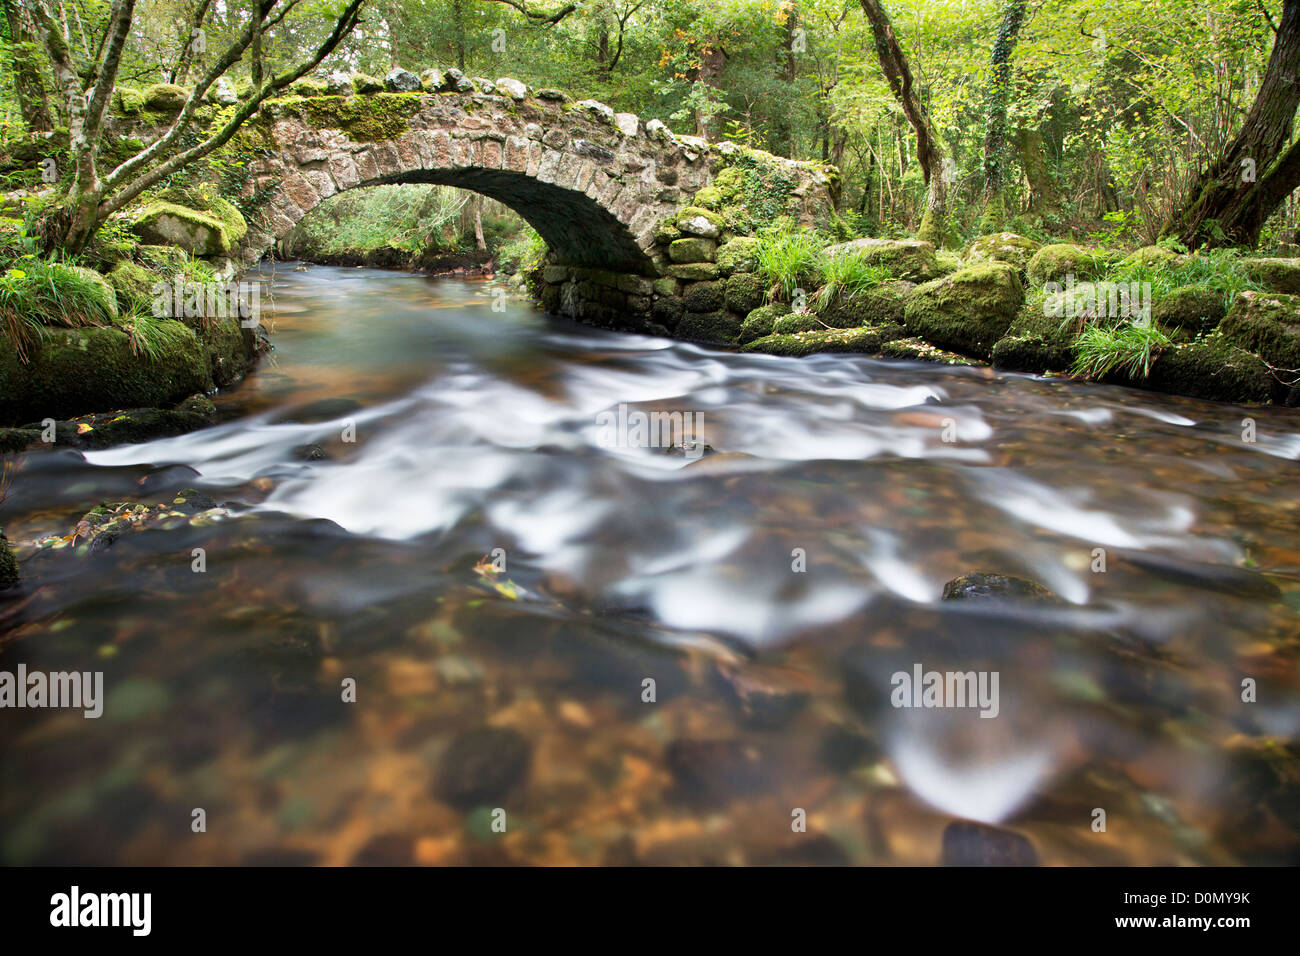 Hisley Bridge on the river Bovey in Devon - Stock Image